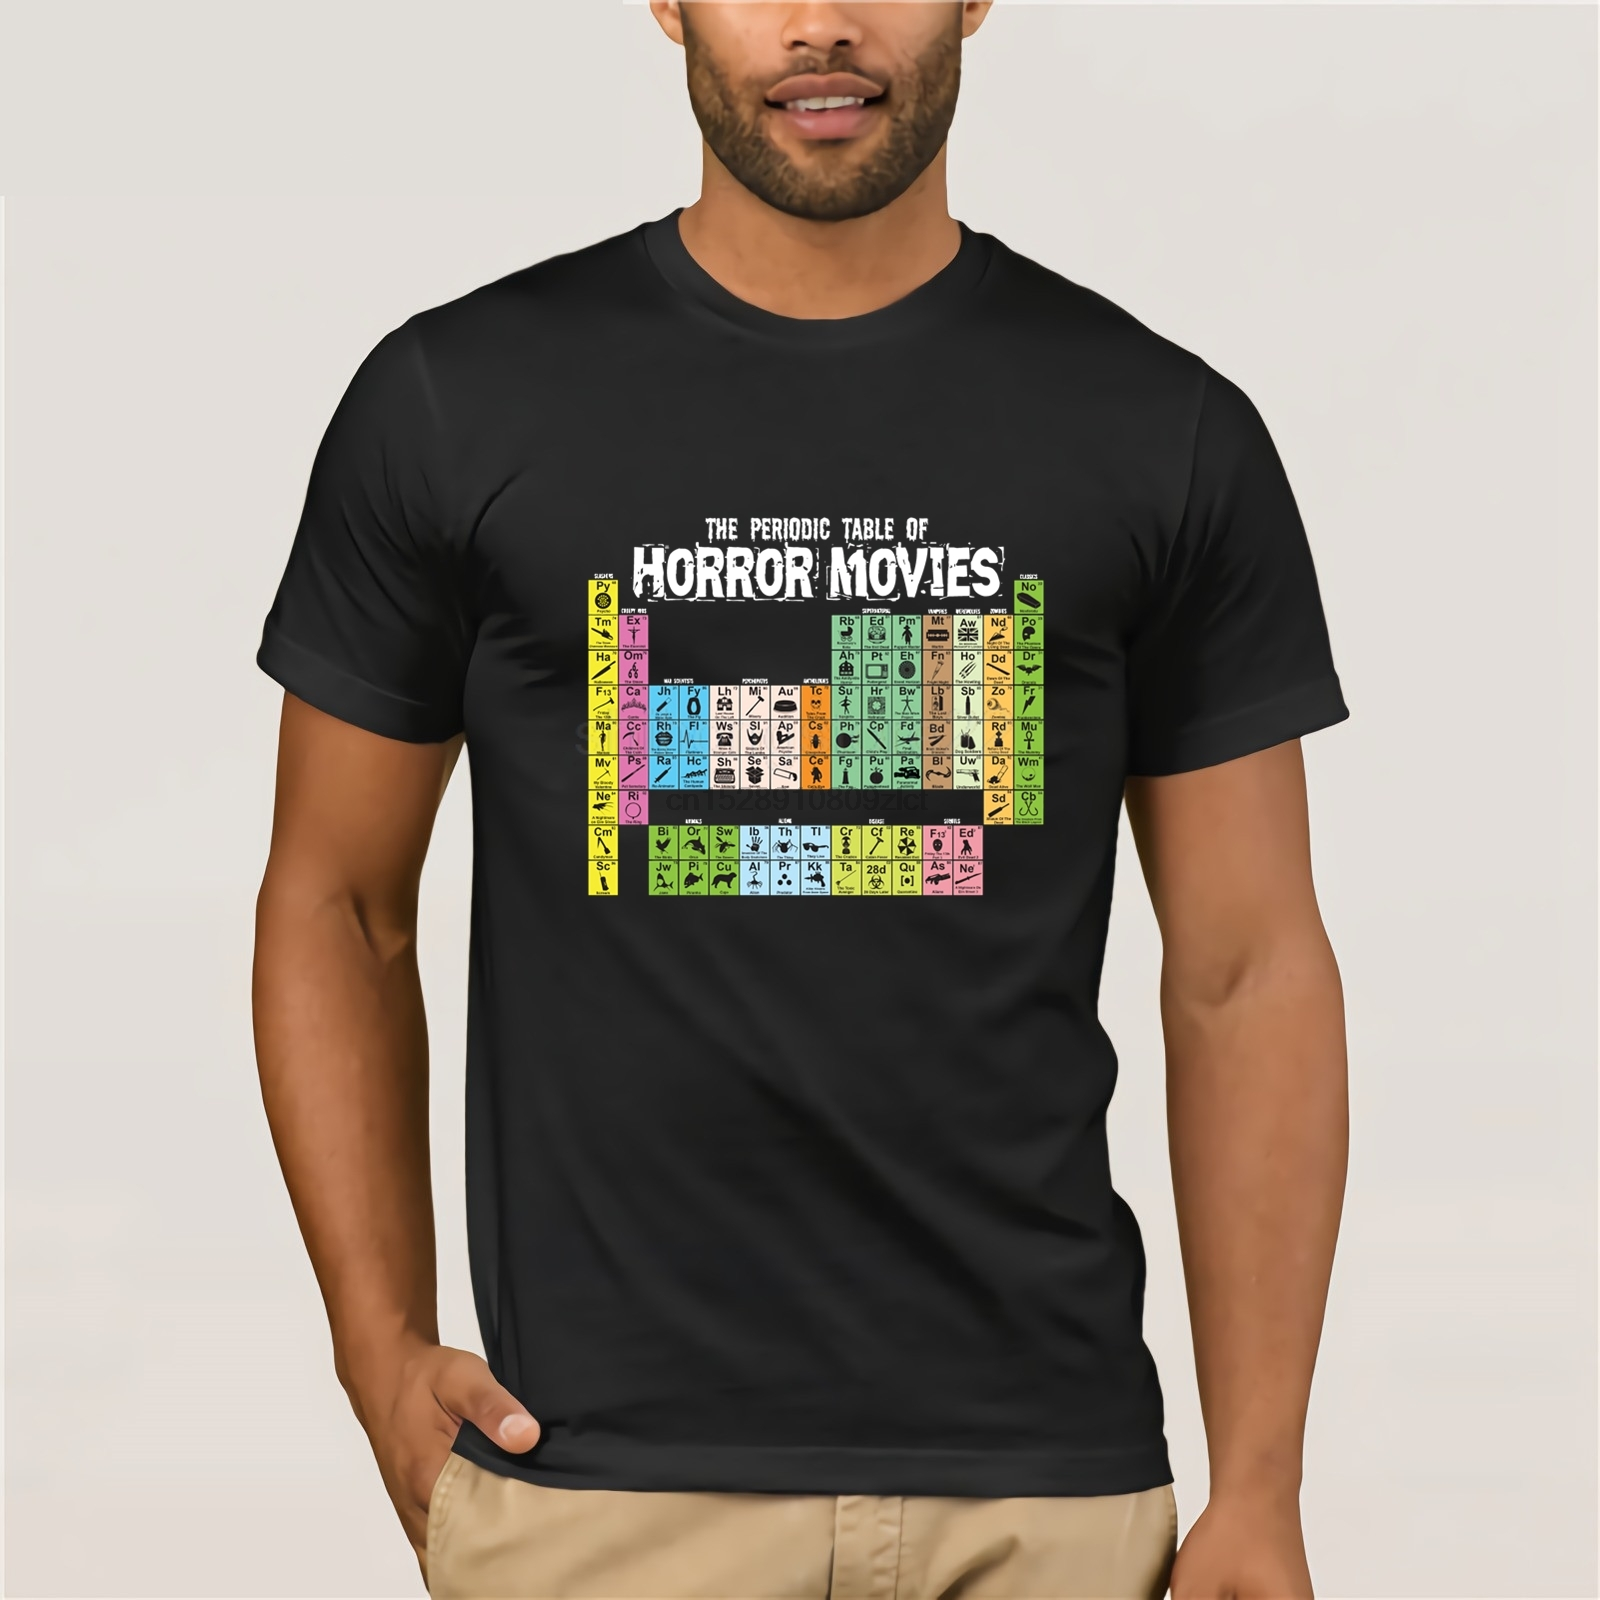 100% cotton O-neck printed T-shirt The Periodic Table of Horror Movies T-Shirt